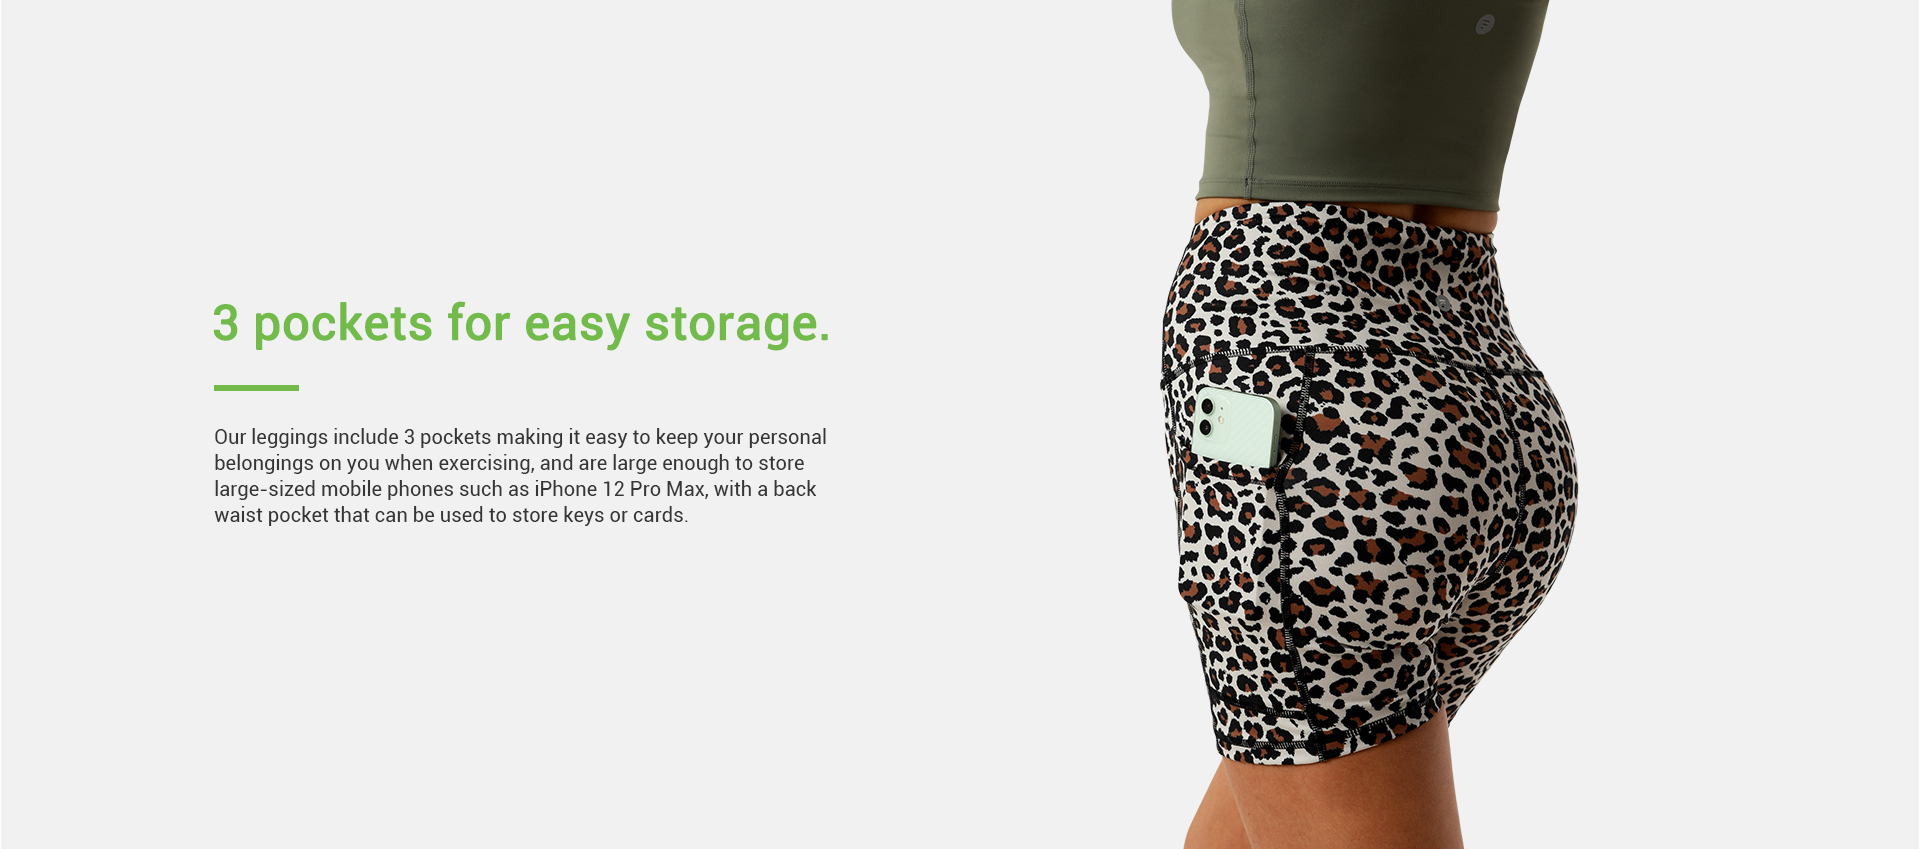 Letsfit short leggings with 3 pockets making it easy to keep your personal belongings on you when exercising, and are large enough to store waist pocket.